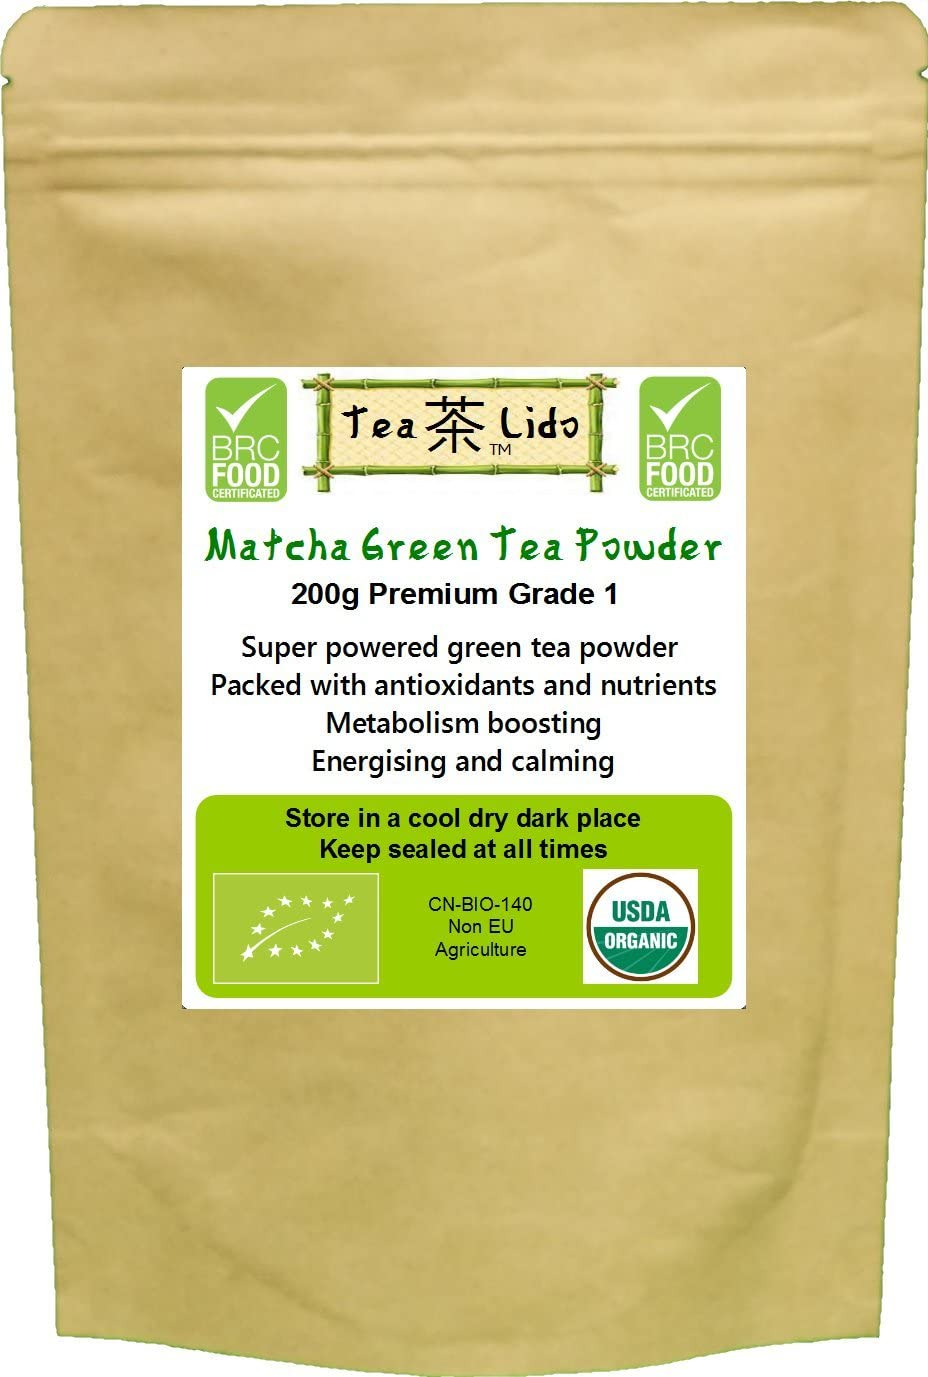 Tea-Lido Matcha Green Tea